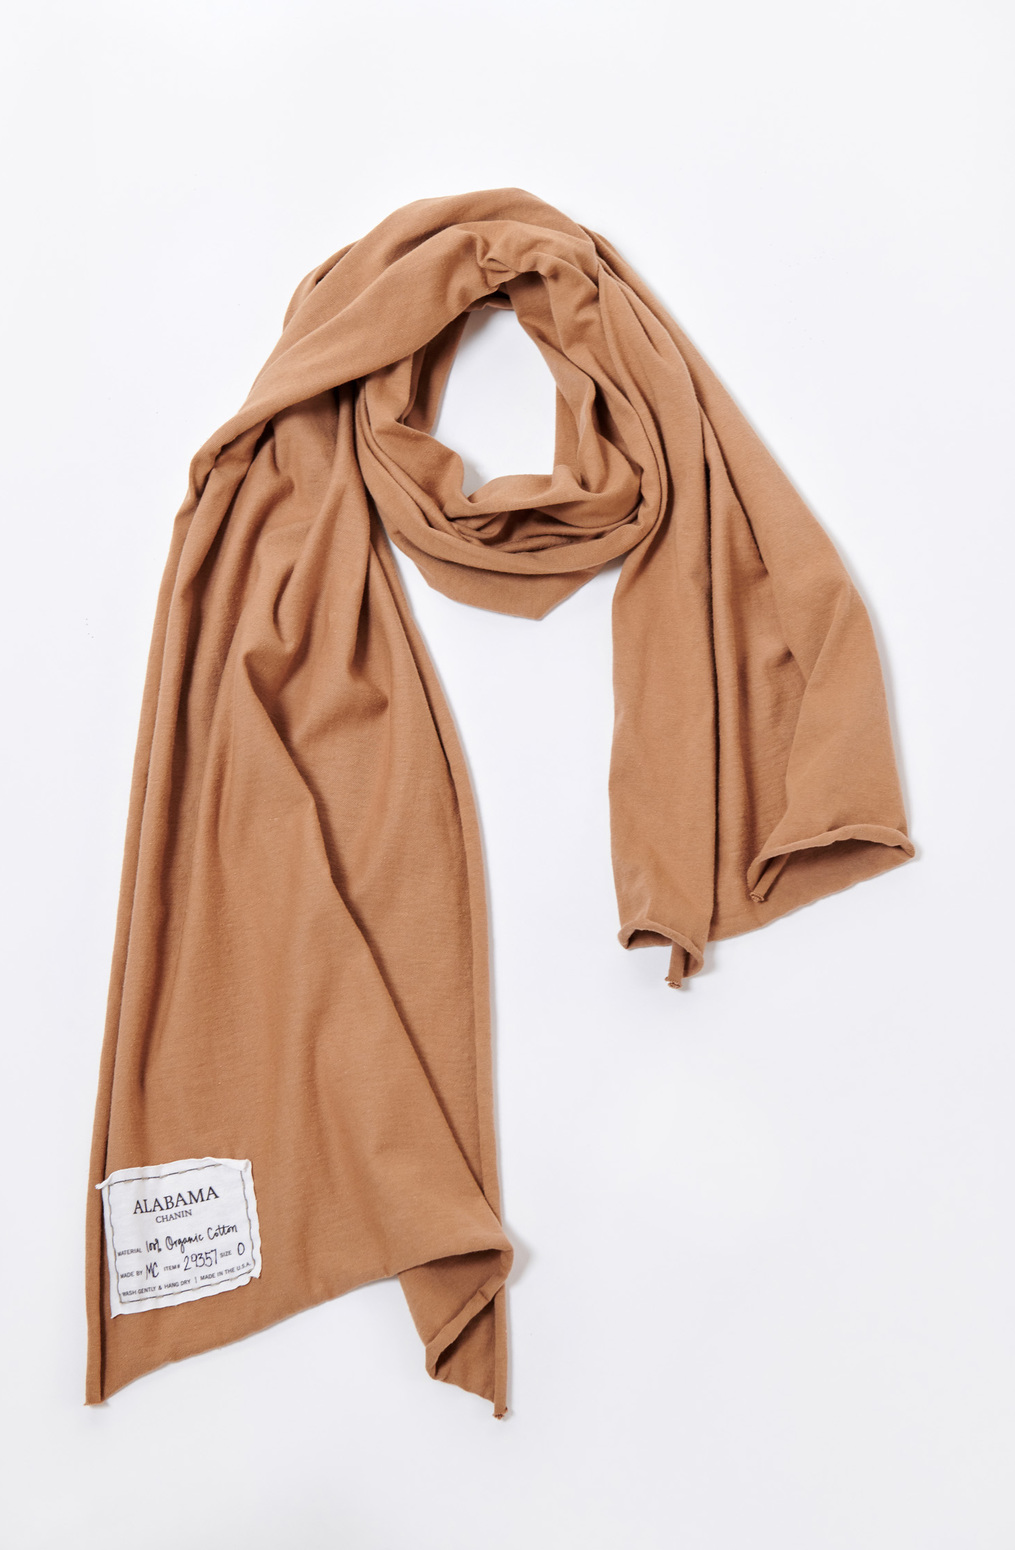 Alabama chanin organic cotton scarf 1